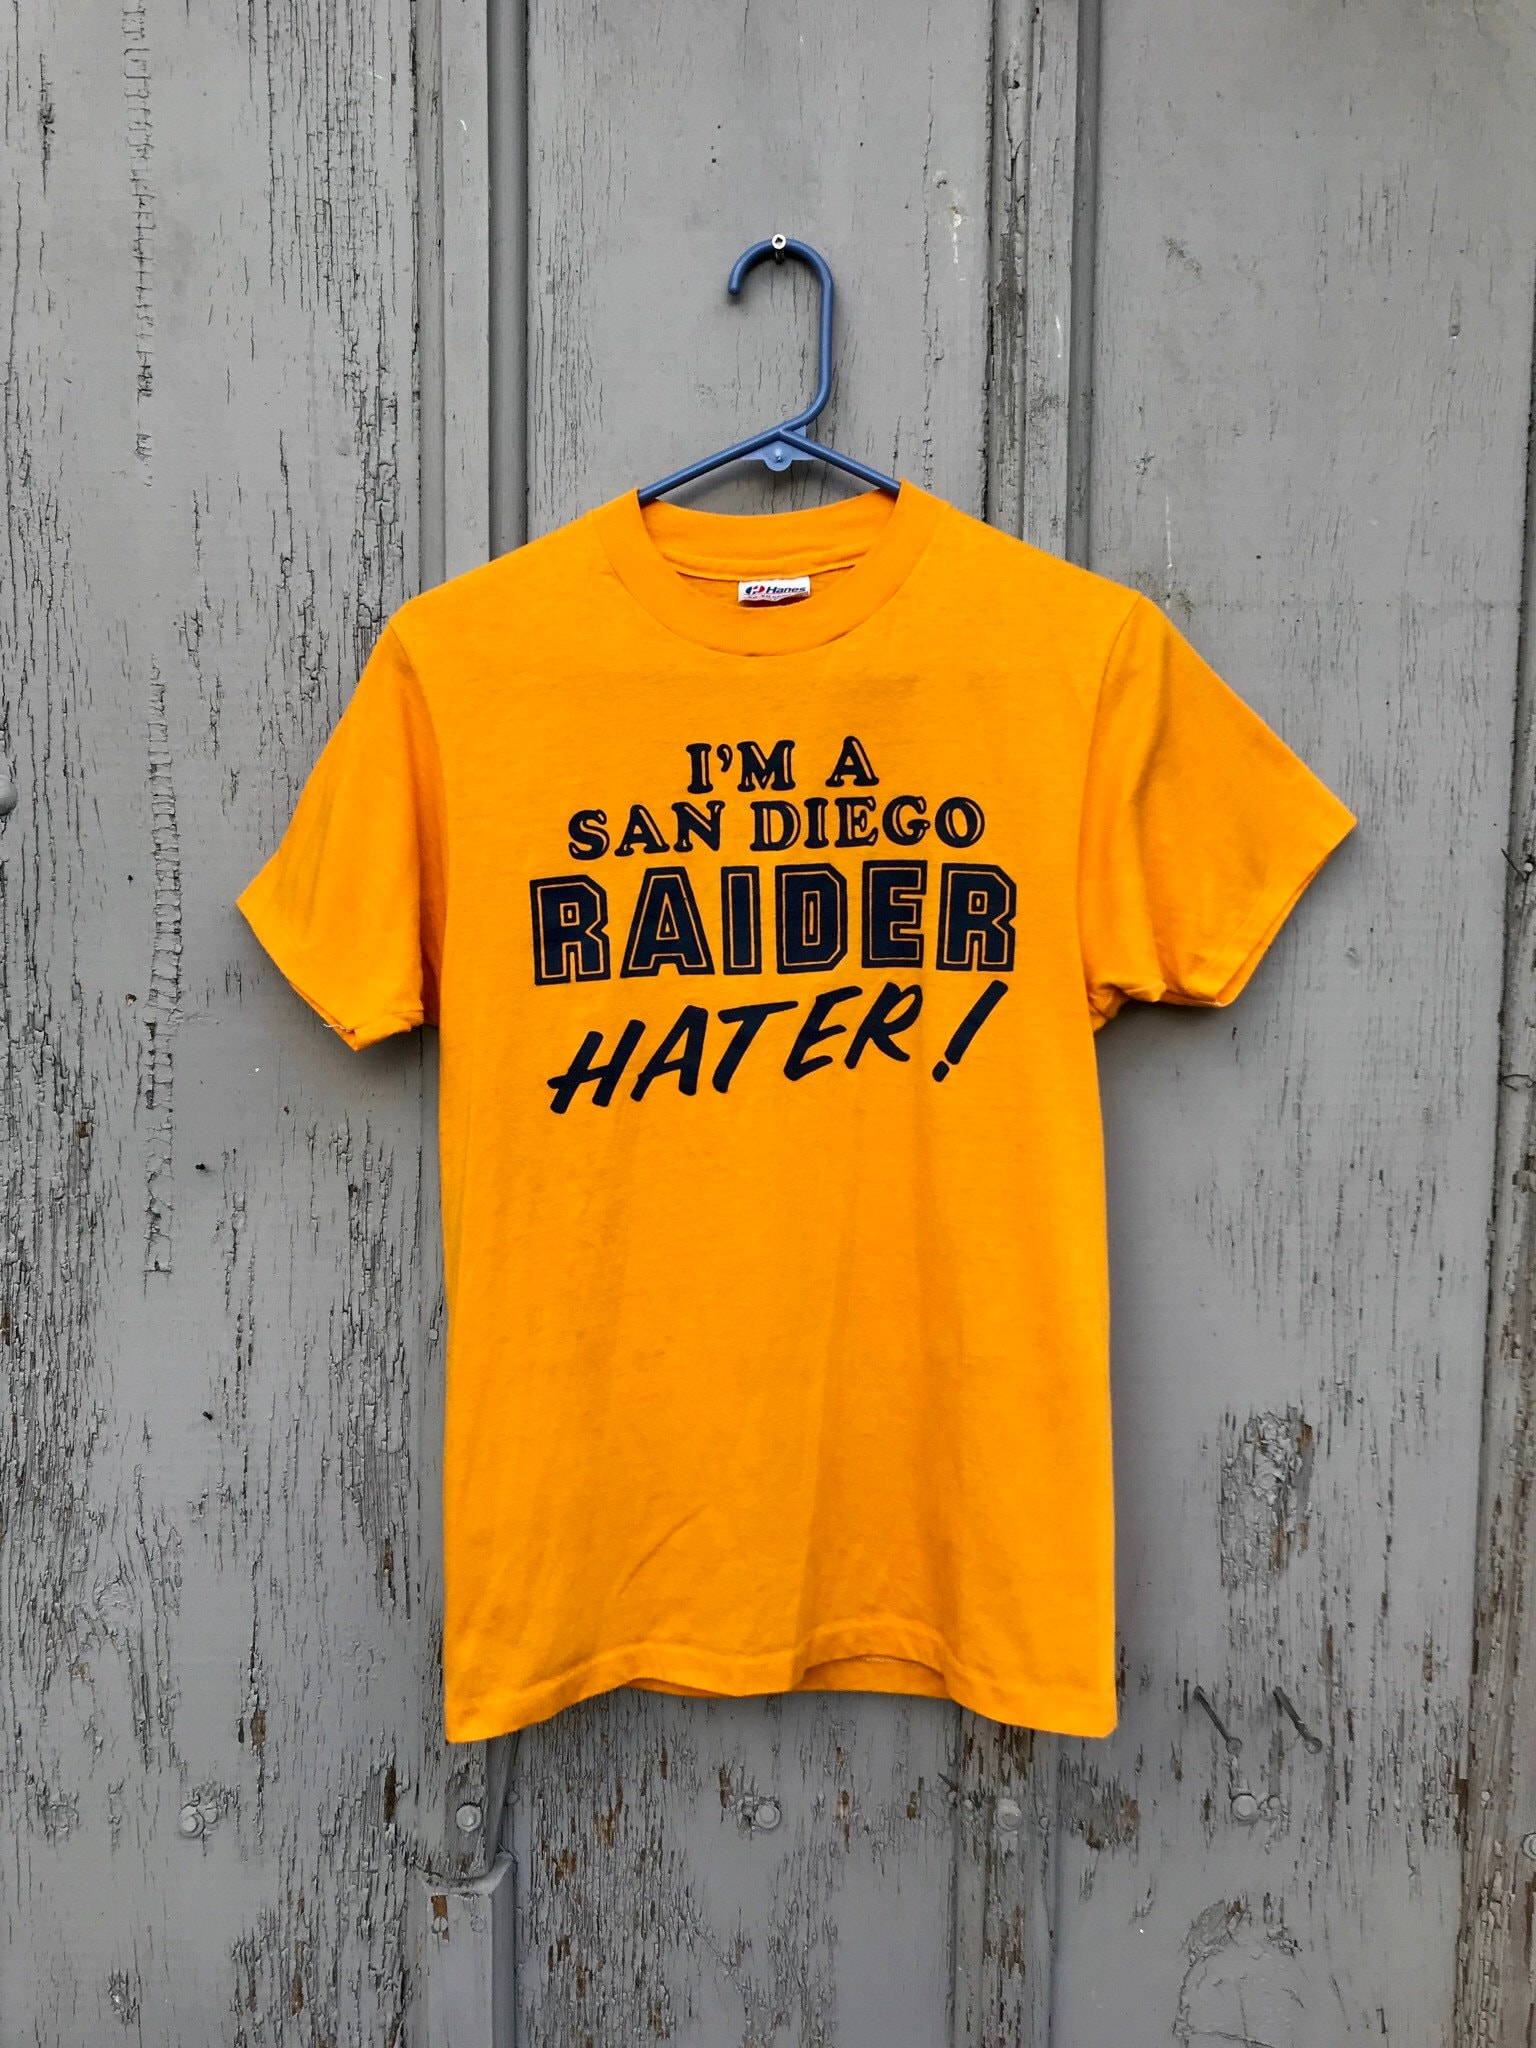 2a425f337 Rare Early 80s San Diego Raider Hater T Shirt / Vintage NFL   Etsy